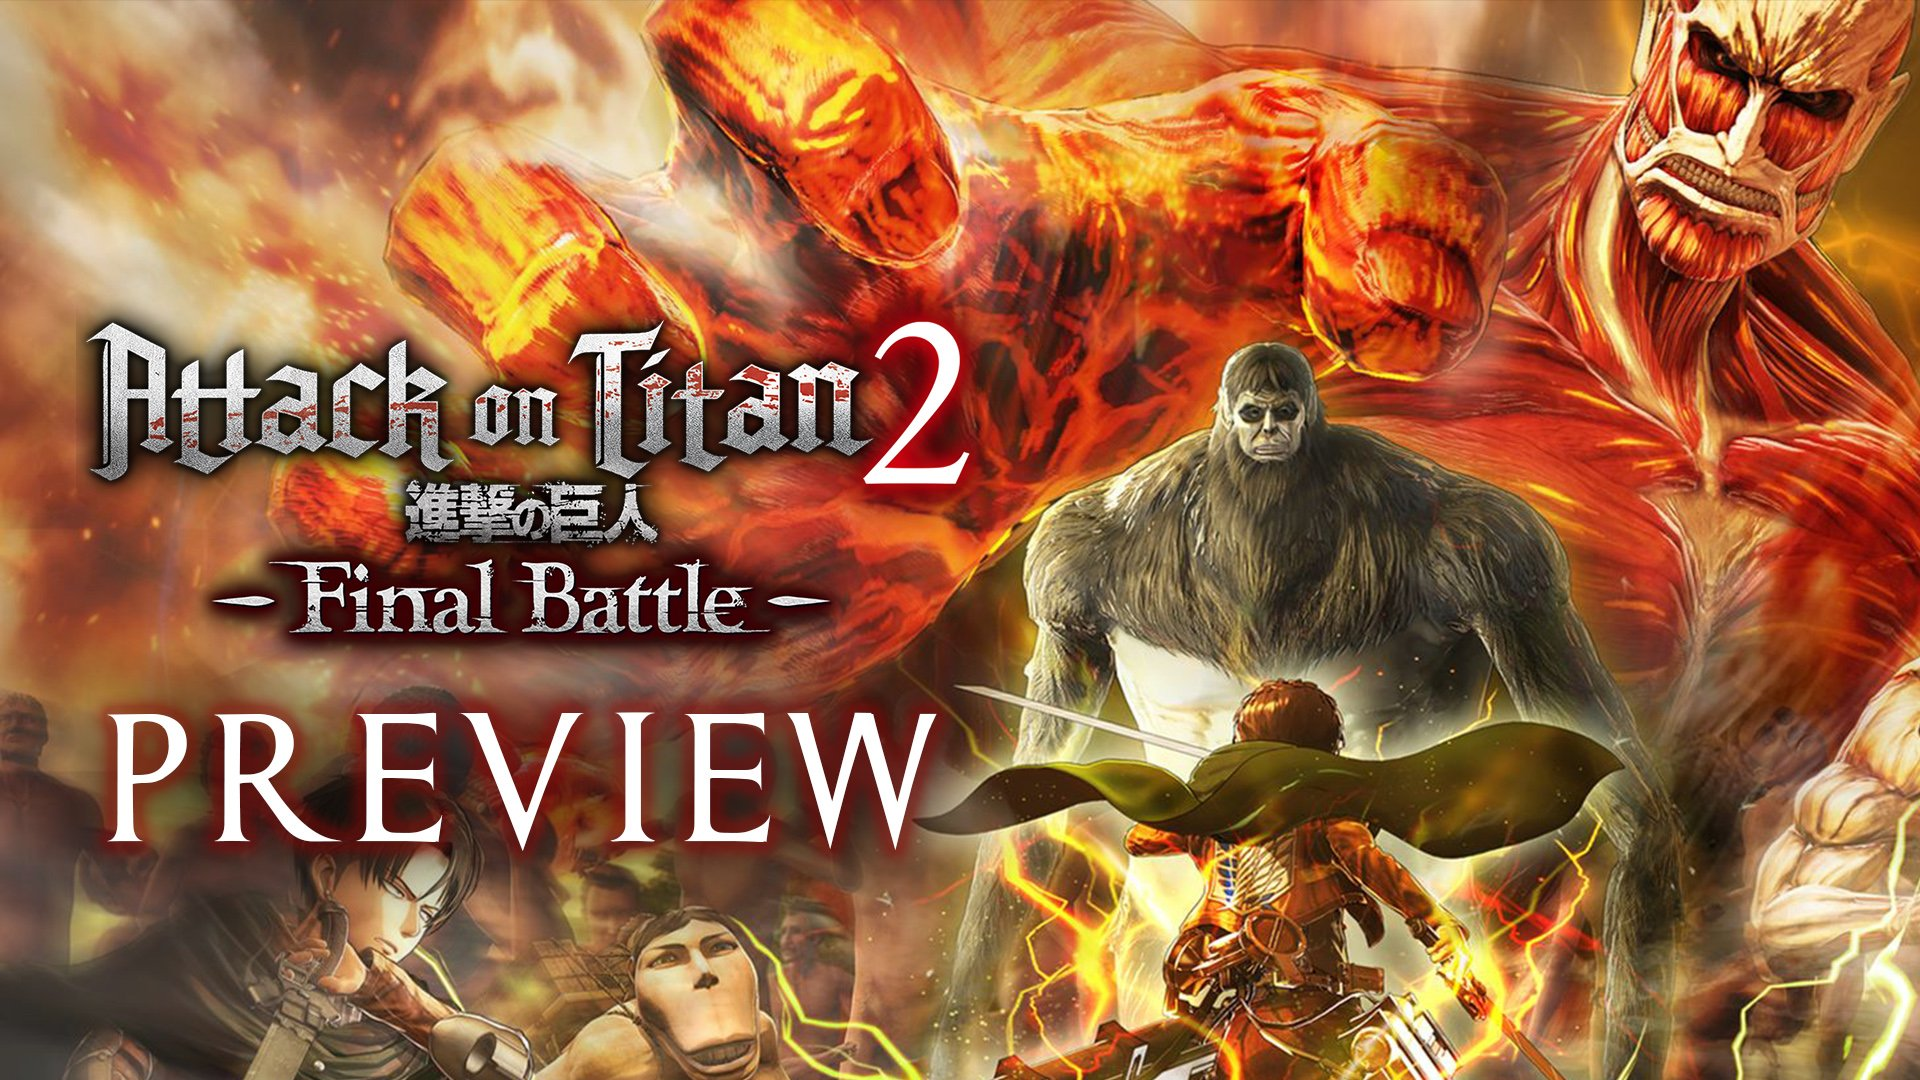 Attack on Titan 2 Final Battle Hands-On Preview | Fextralife